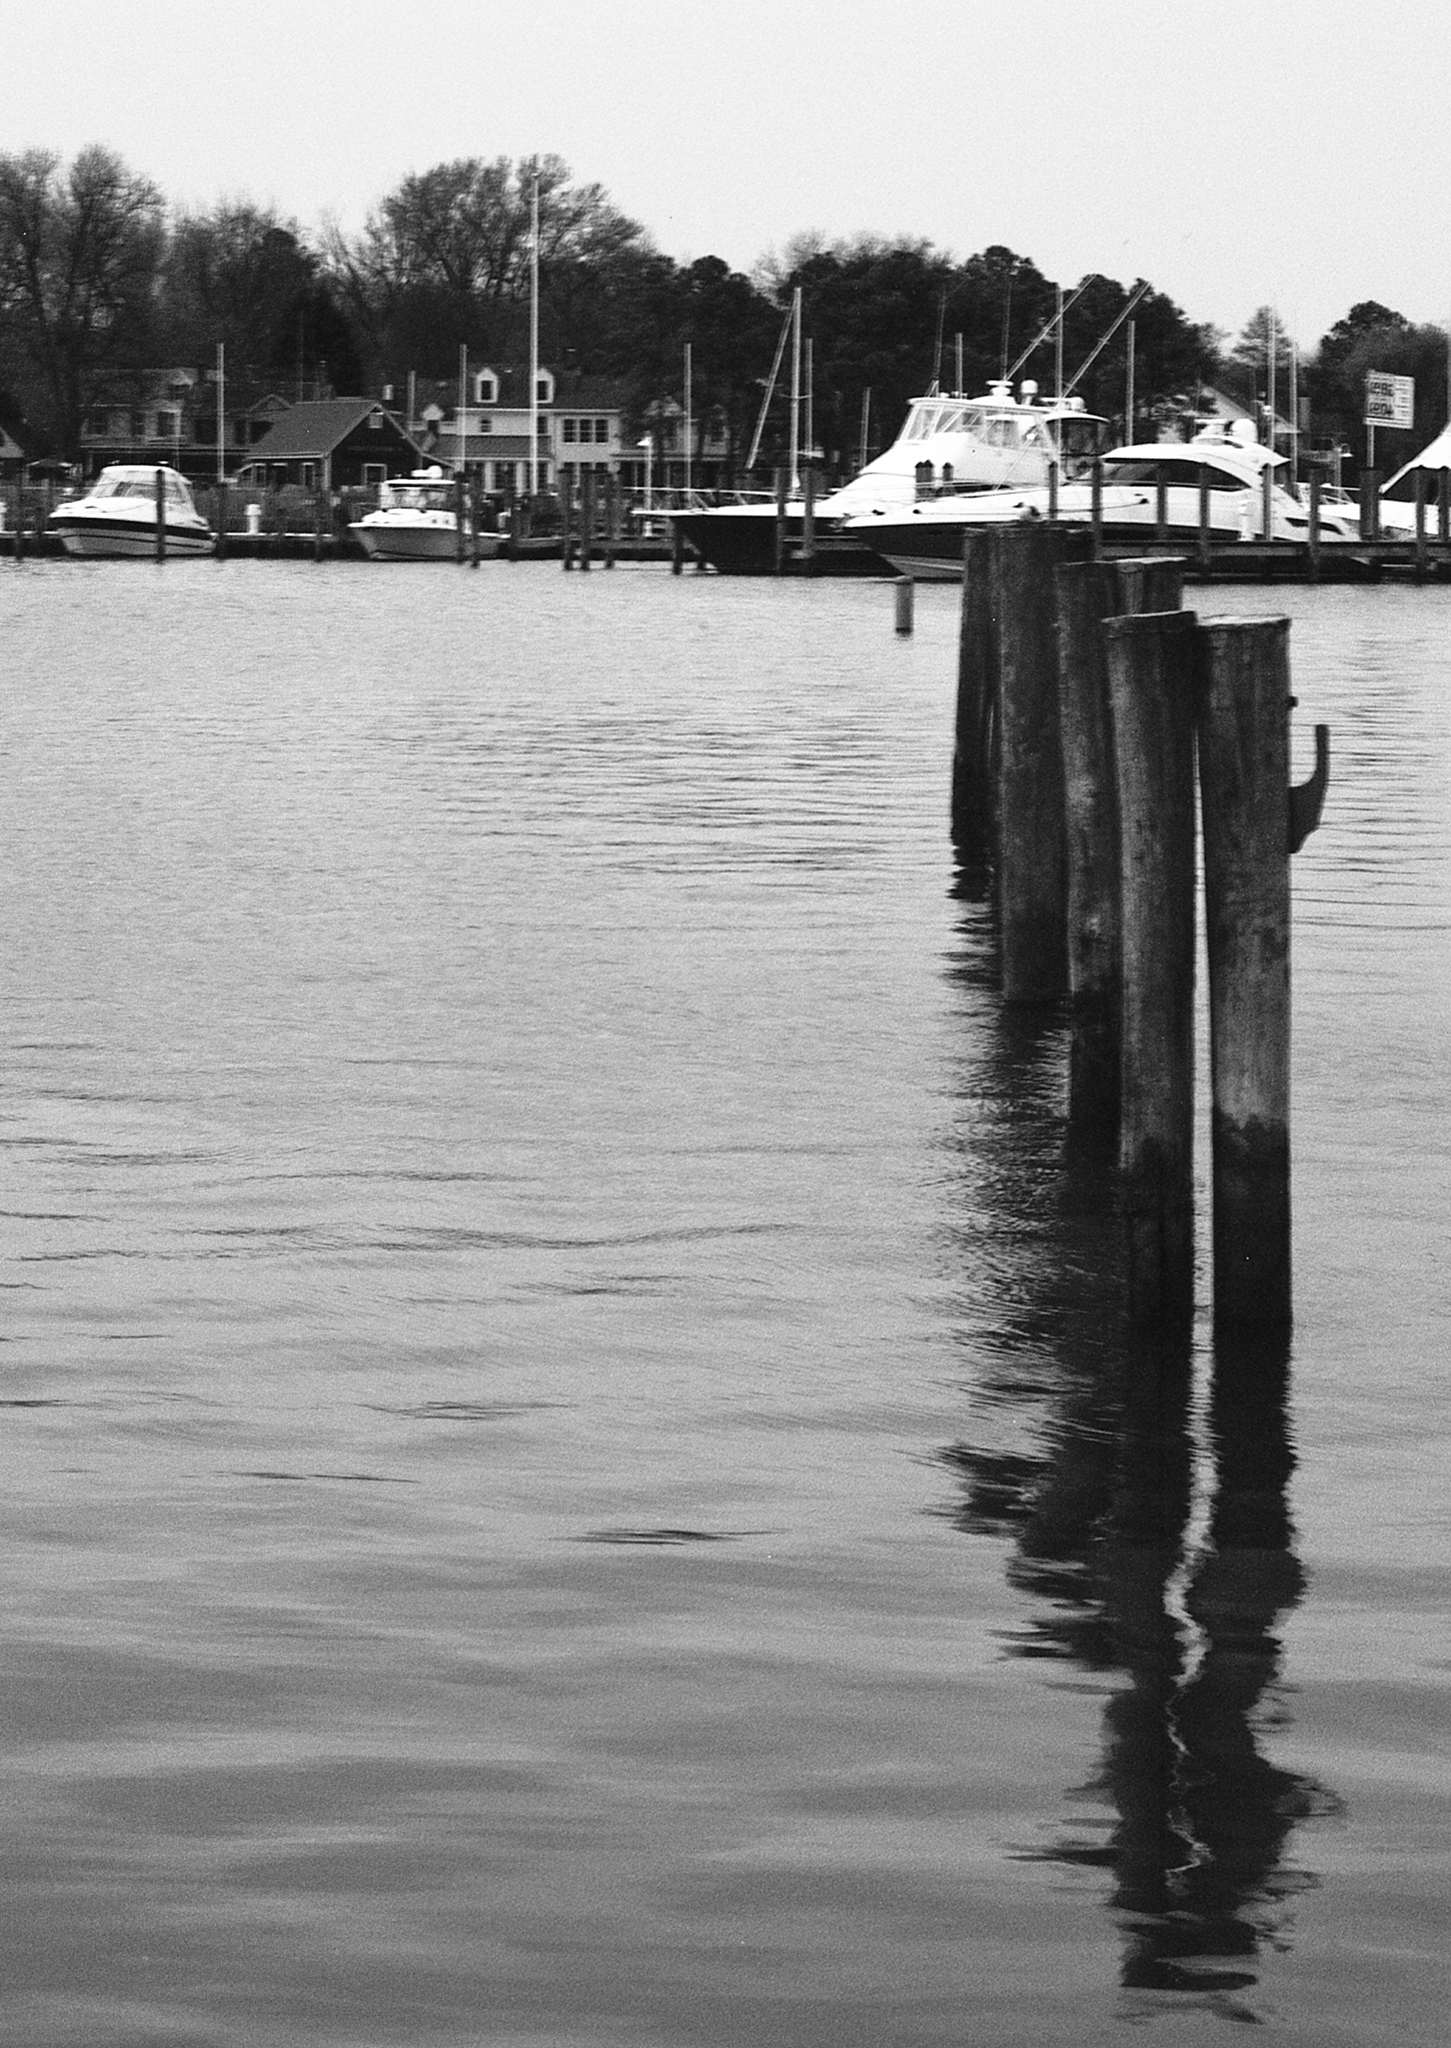 4x5_for_365_project_0109_St_Michaels_Marina.png